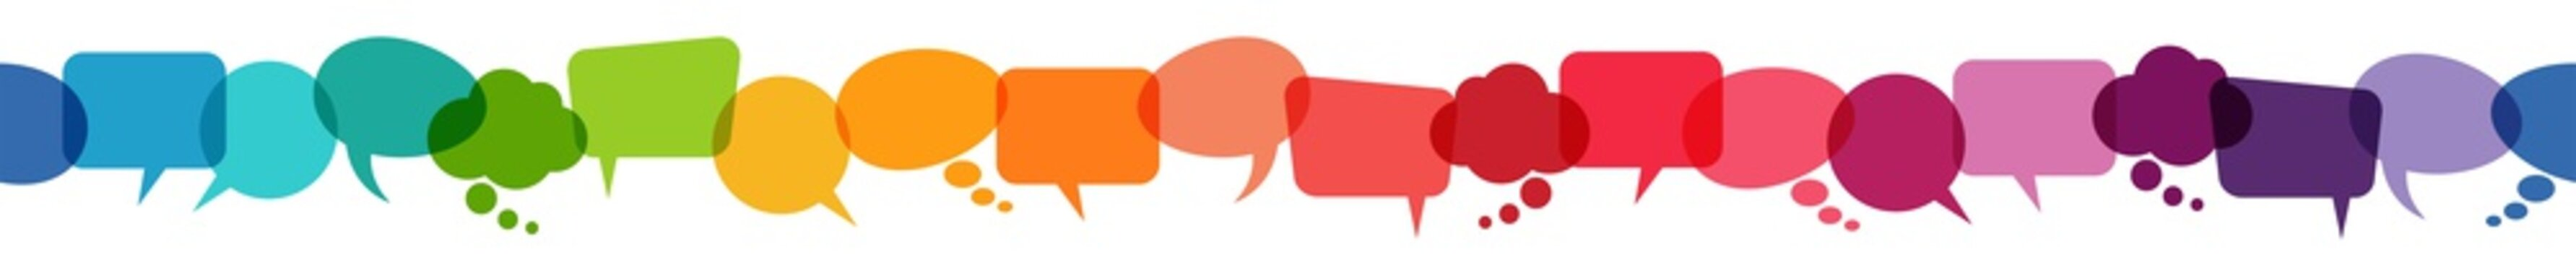 seamless colored speech bubbles in a row